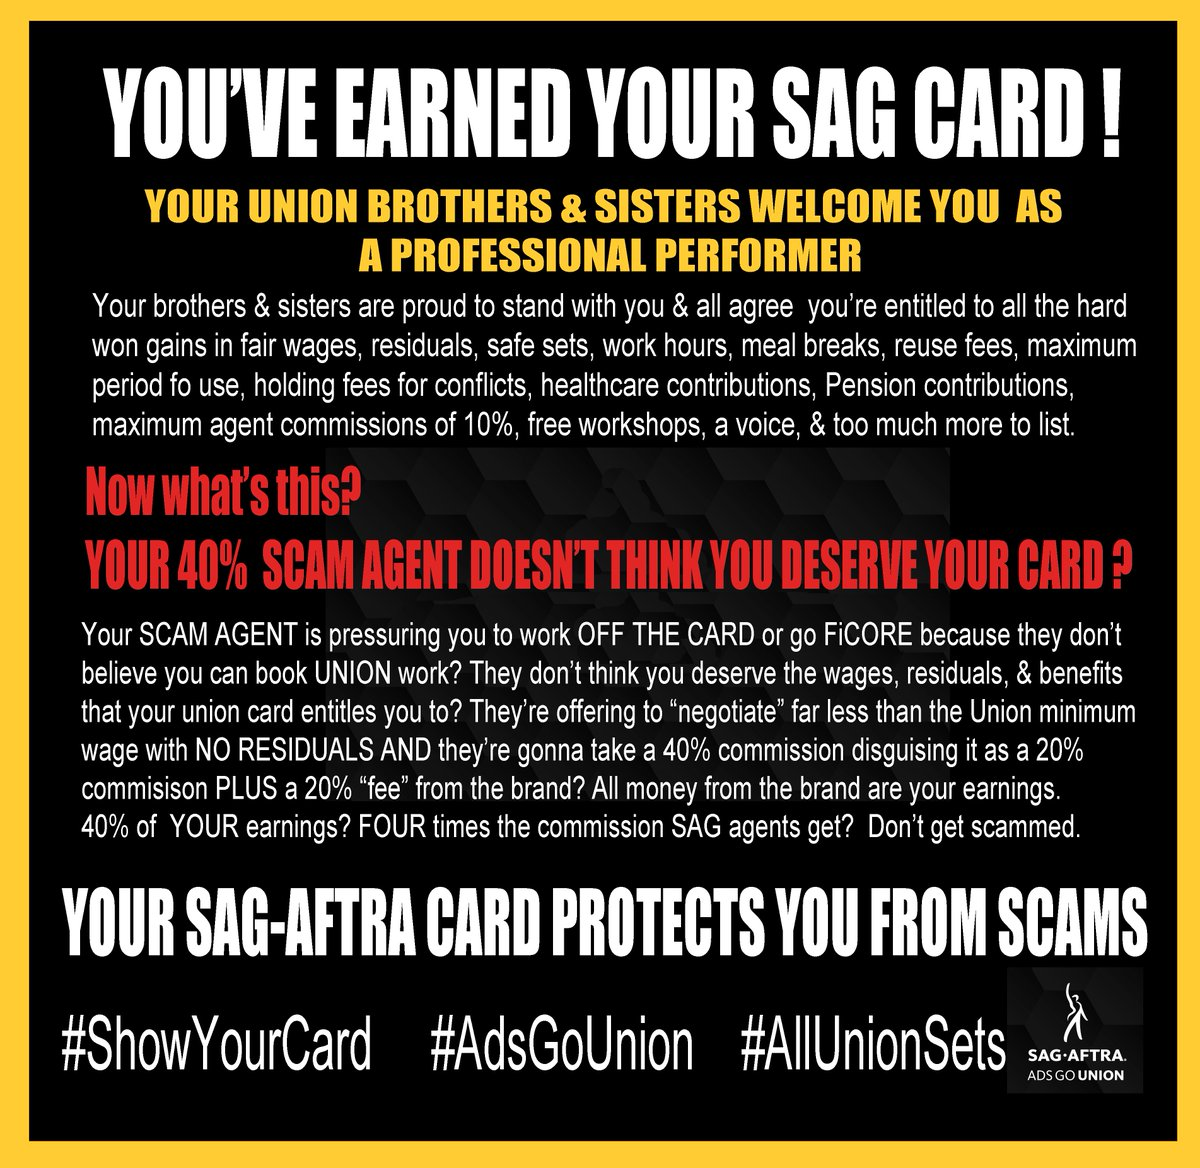 You've earned your #SAGcard.Now you're being pressured 2 work #OffTheCard or #FiCore by a #unionbusting #40percentScam #TalentAgent who doesn't believe u deserve your SAG card,wages,& protections.Ur #SAGAFTRA bros.& sisters believe in you. #ShowYourCard #AdsGoUnion #AllUnionSets